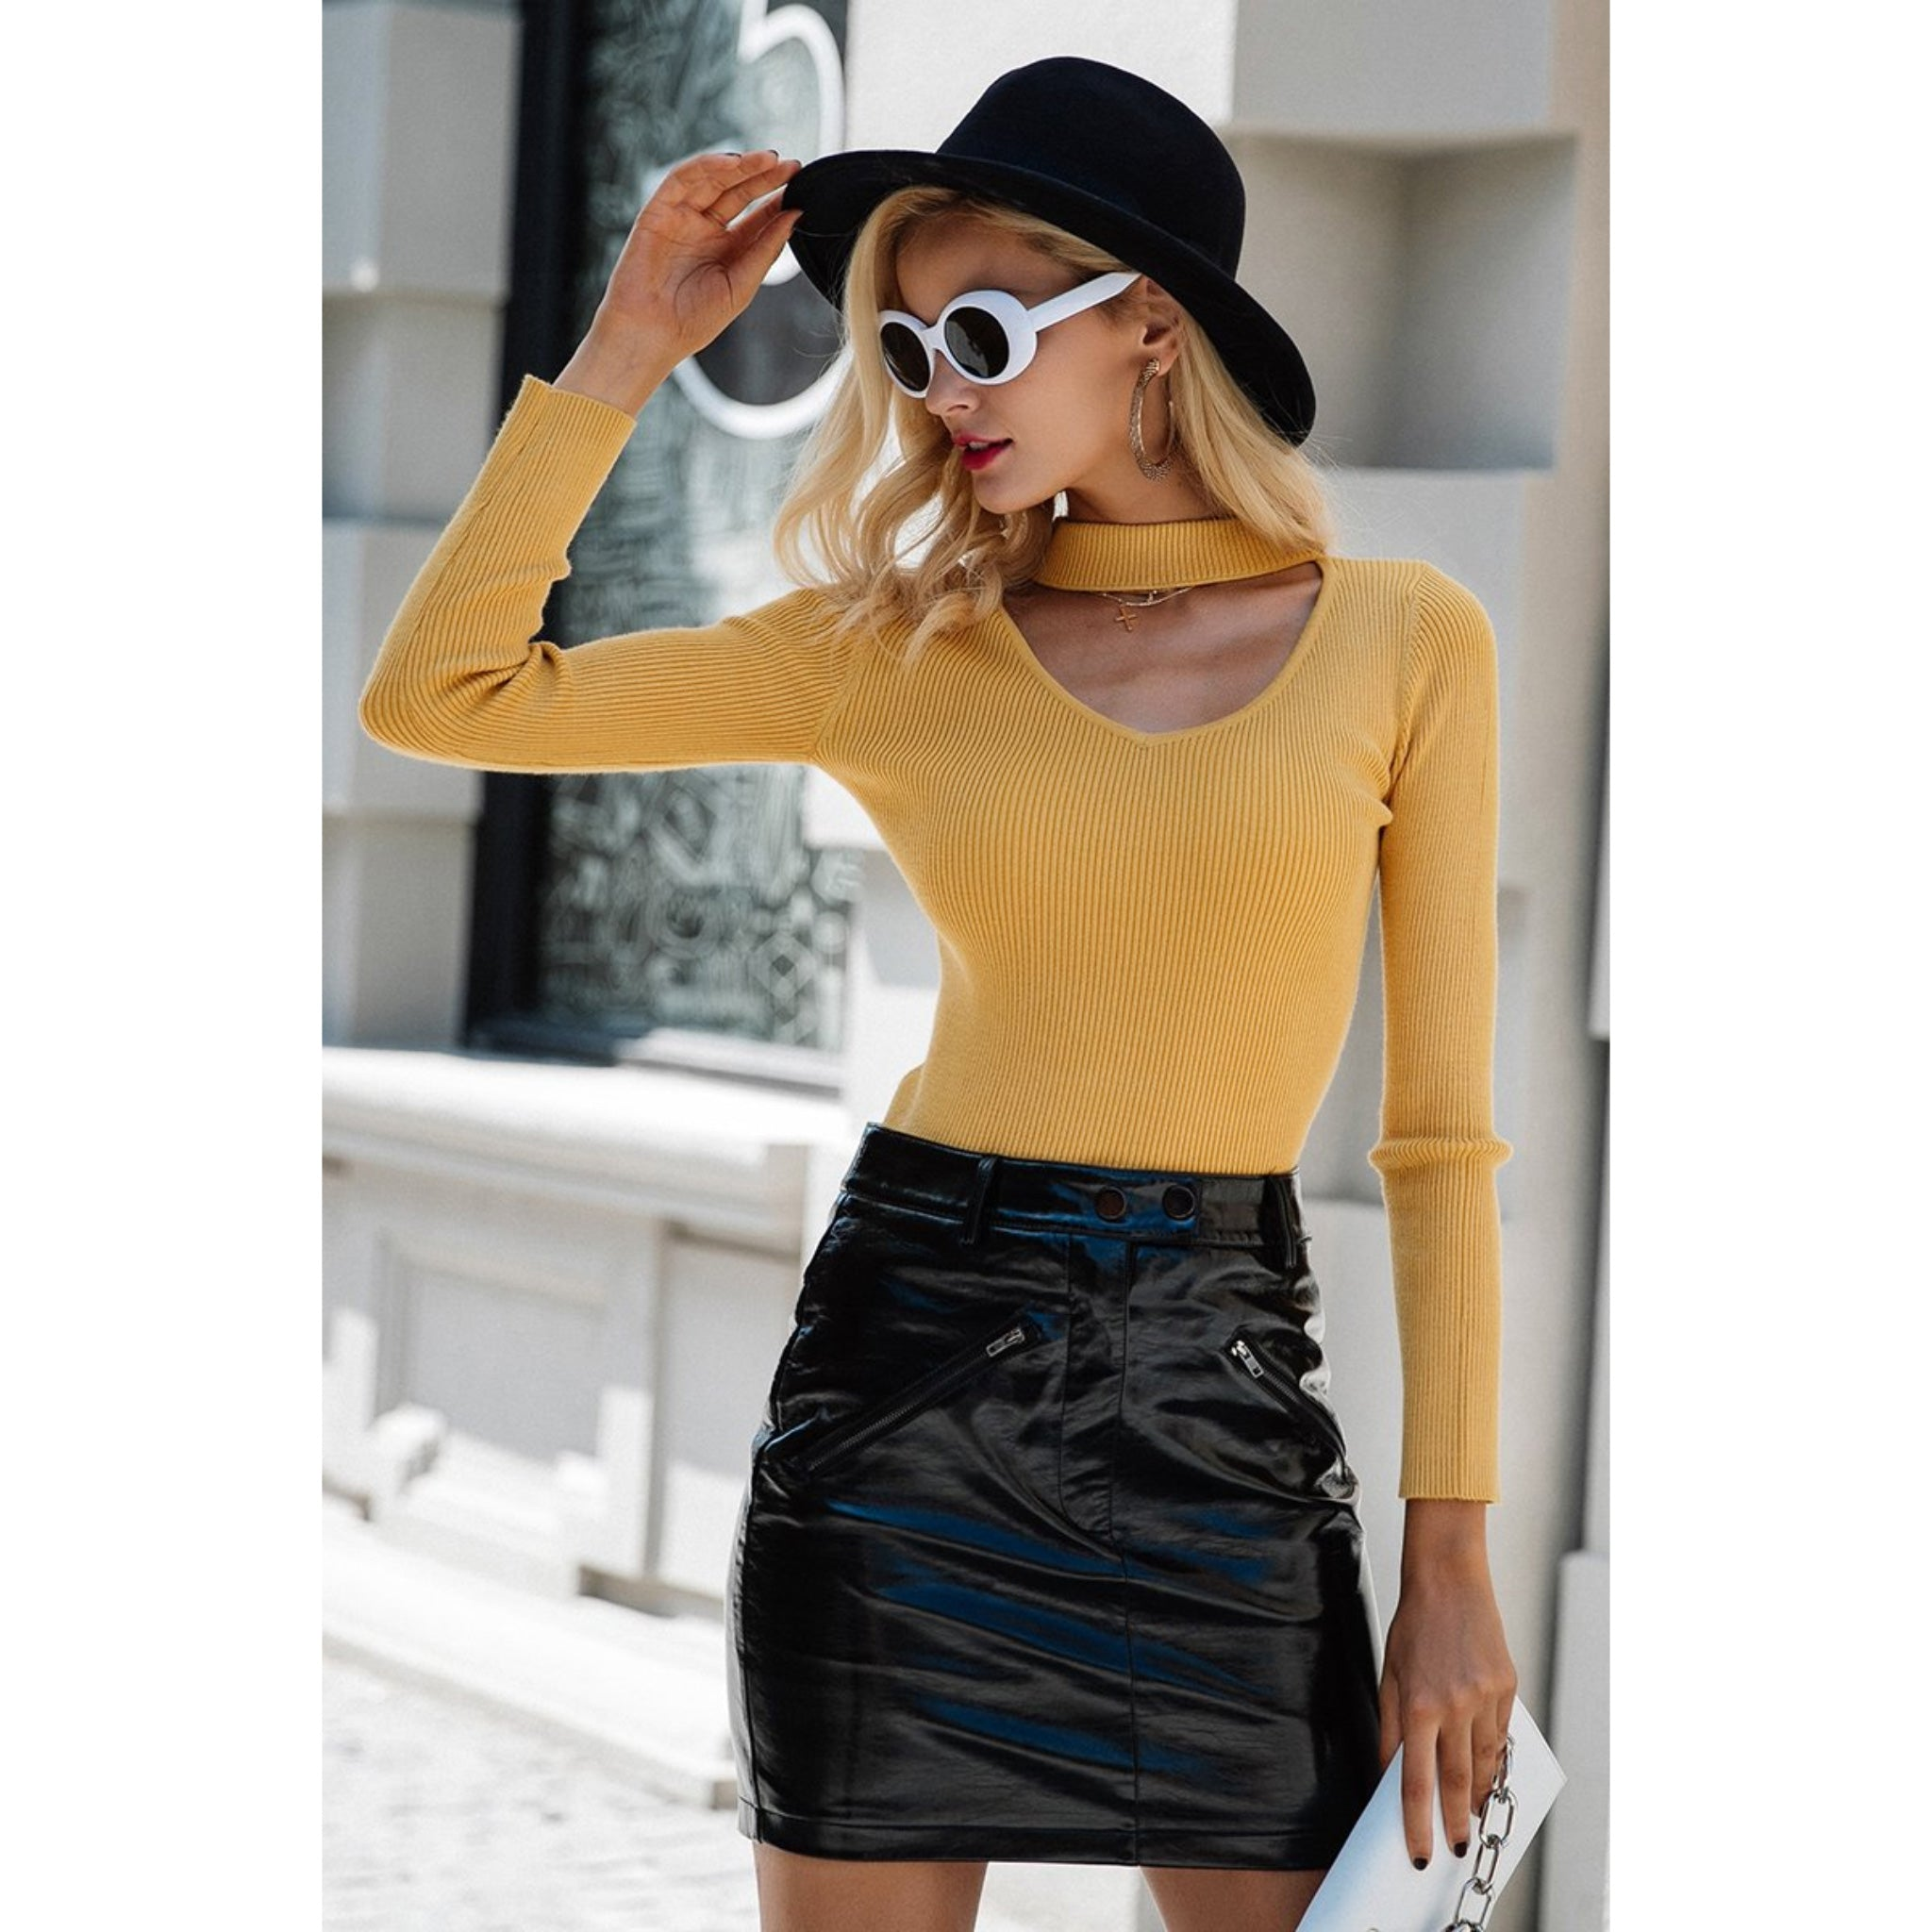 Choker Neck Sweater for Women Yellow Long Sleeve Pullover Sweater